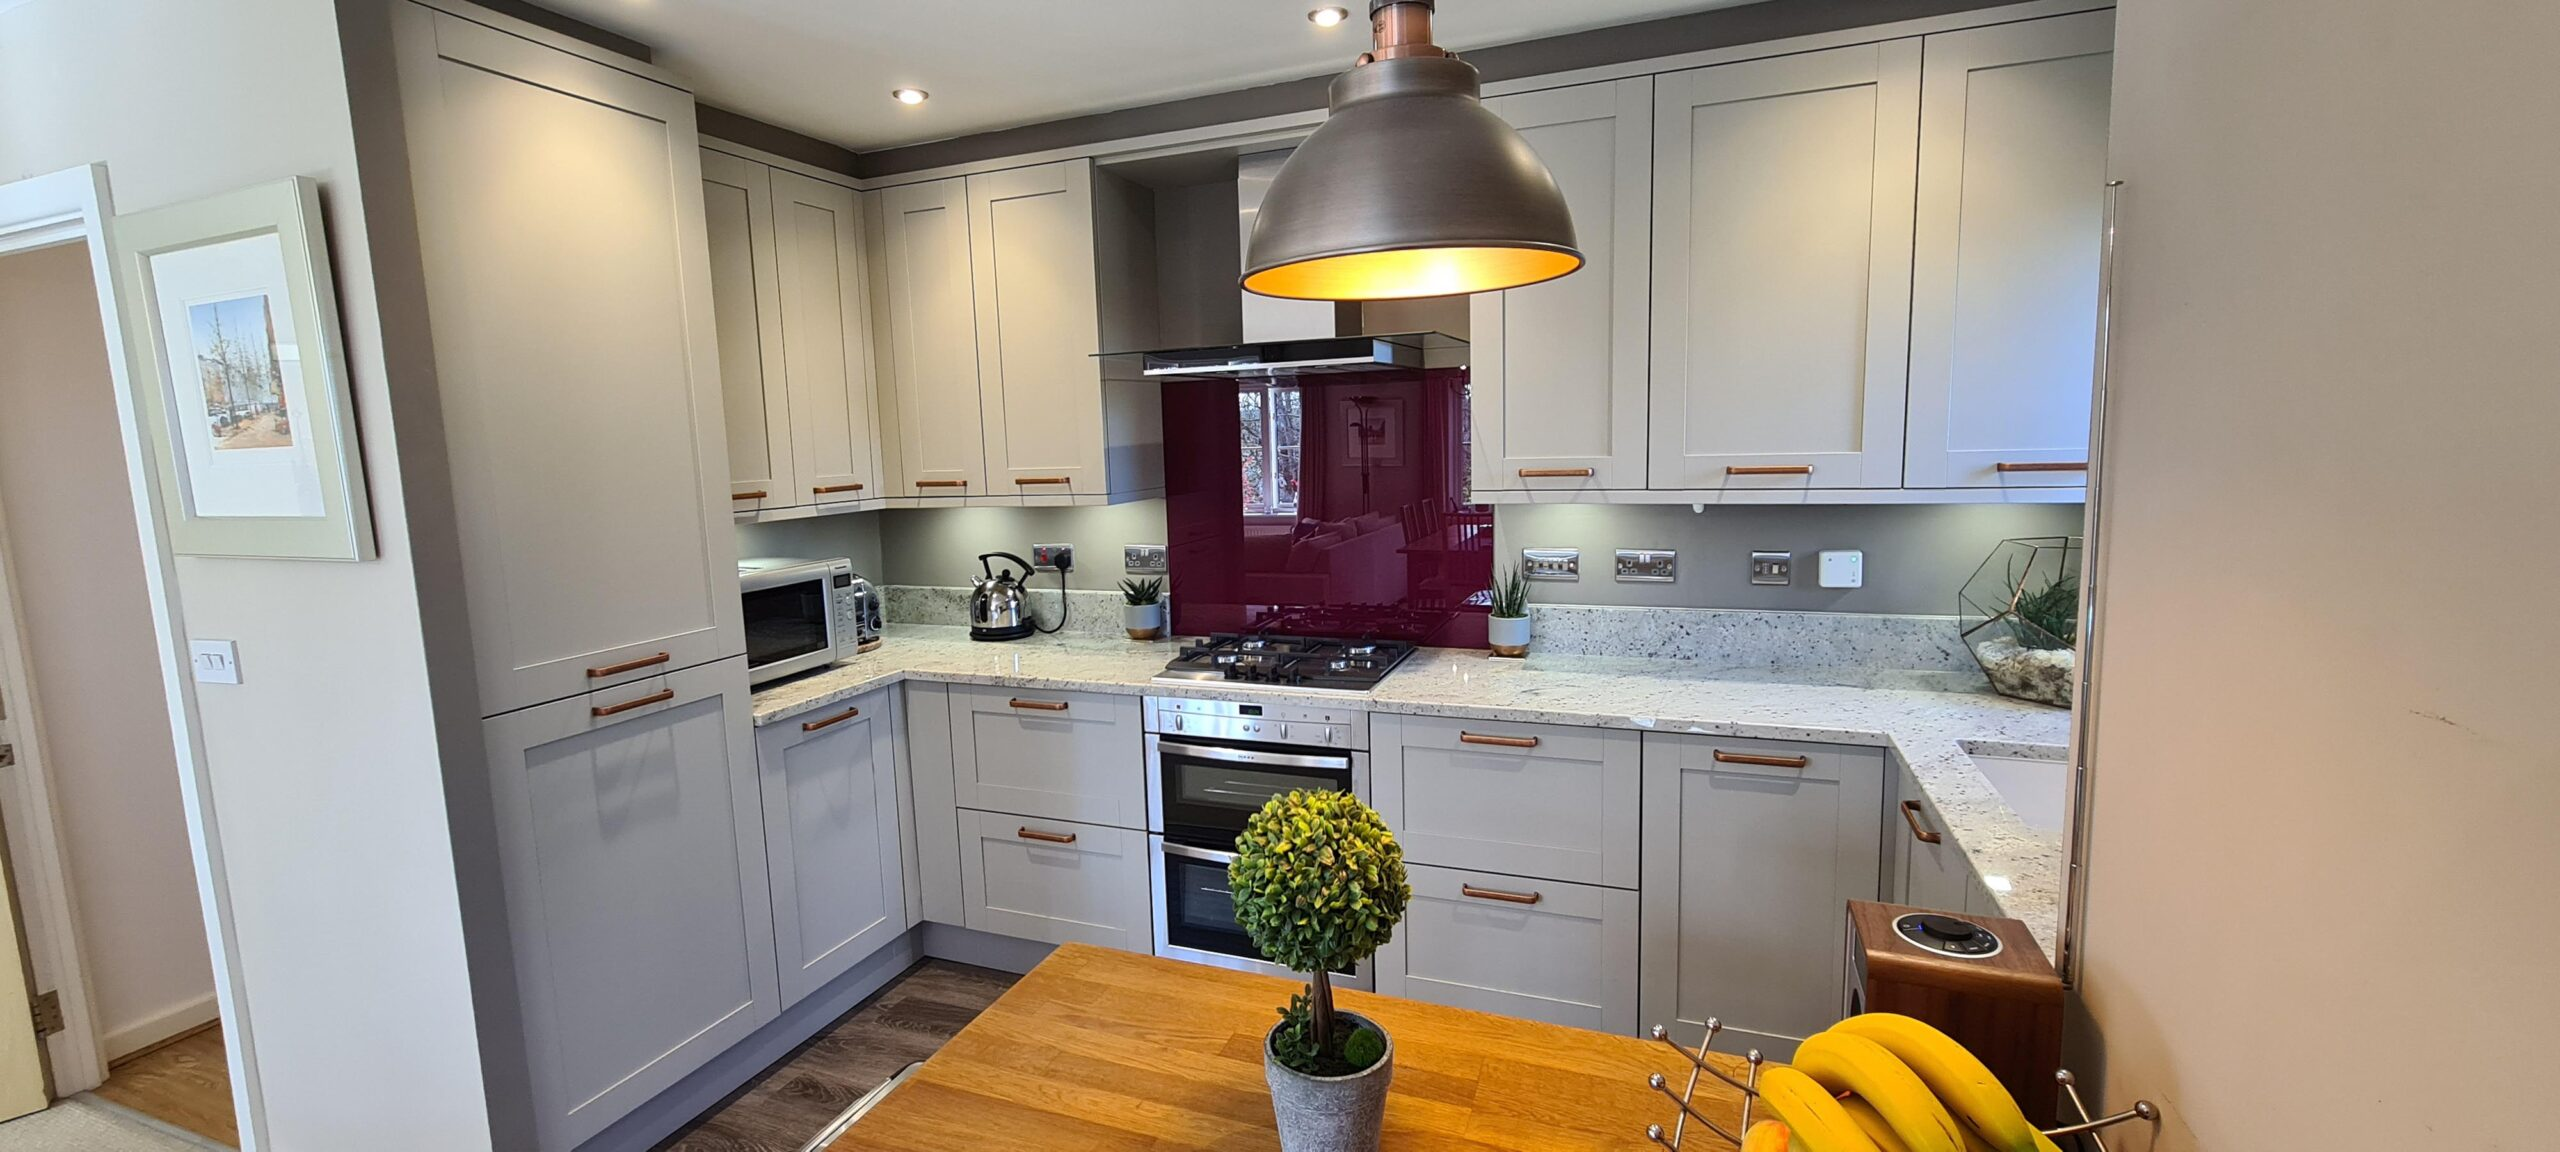 Image of a traditional grey kitchen design with a red splashback and an integrated appliance.